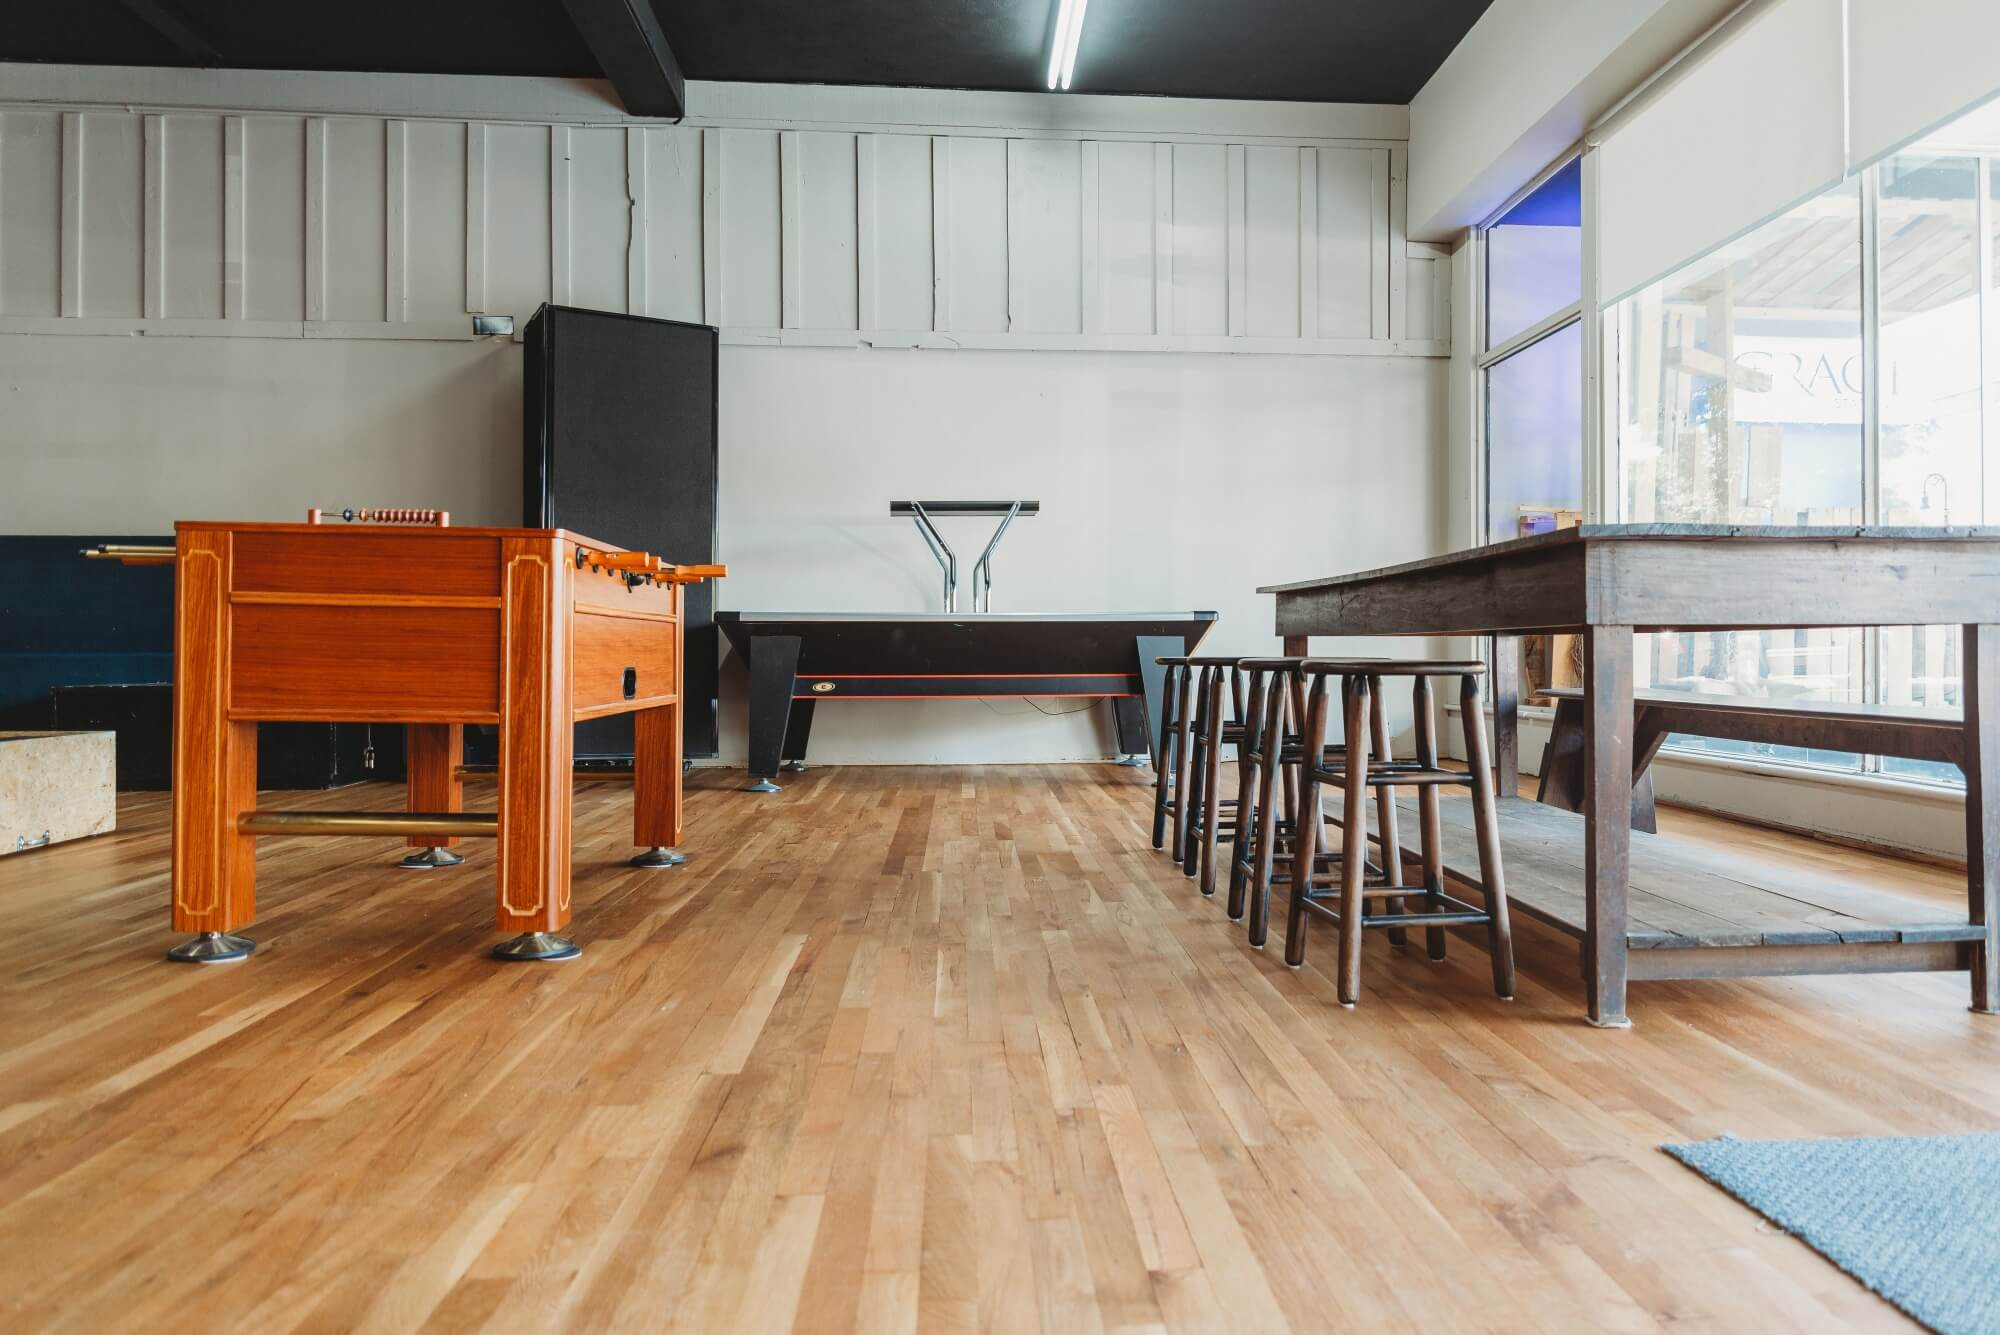 Coffee house that has freshly refinished hardwood flooring.